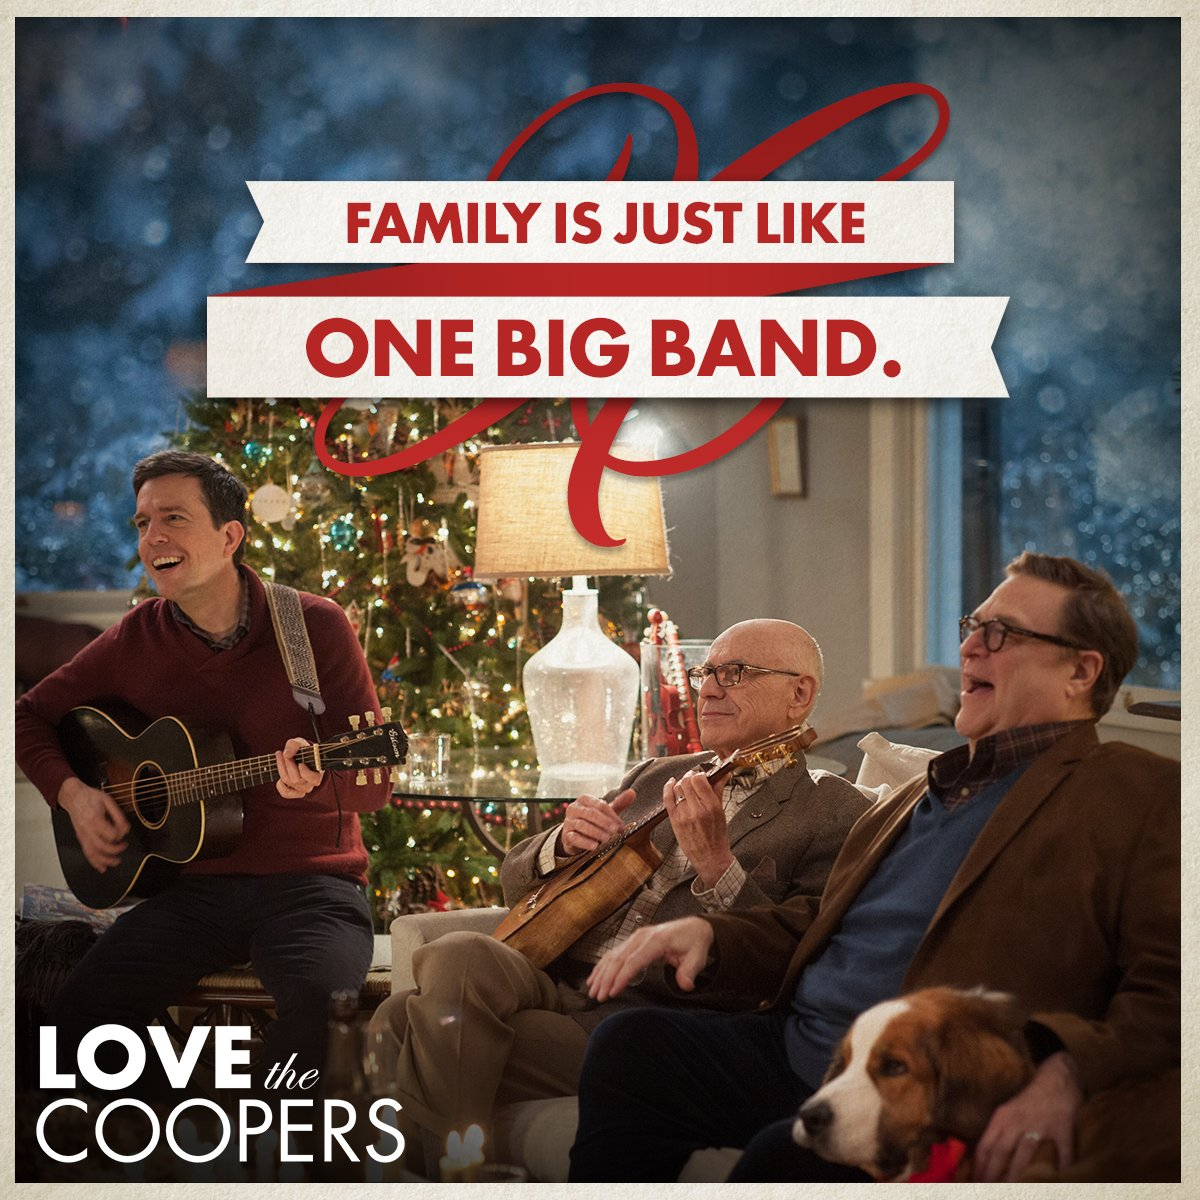 Love is the rhythm a family needs to stick together. #LoveTheCoopers https://t.co/isGw4BXACl